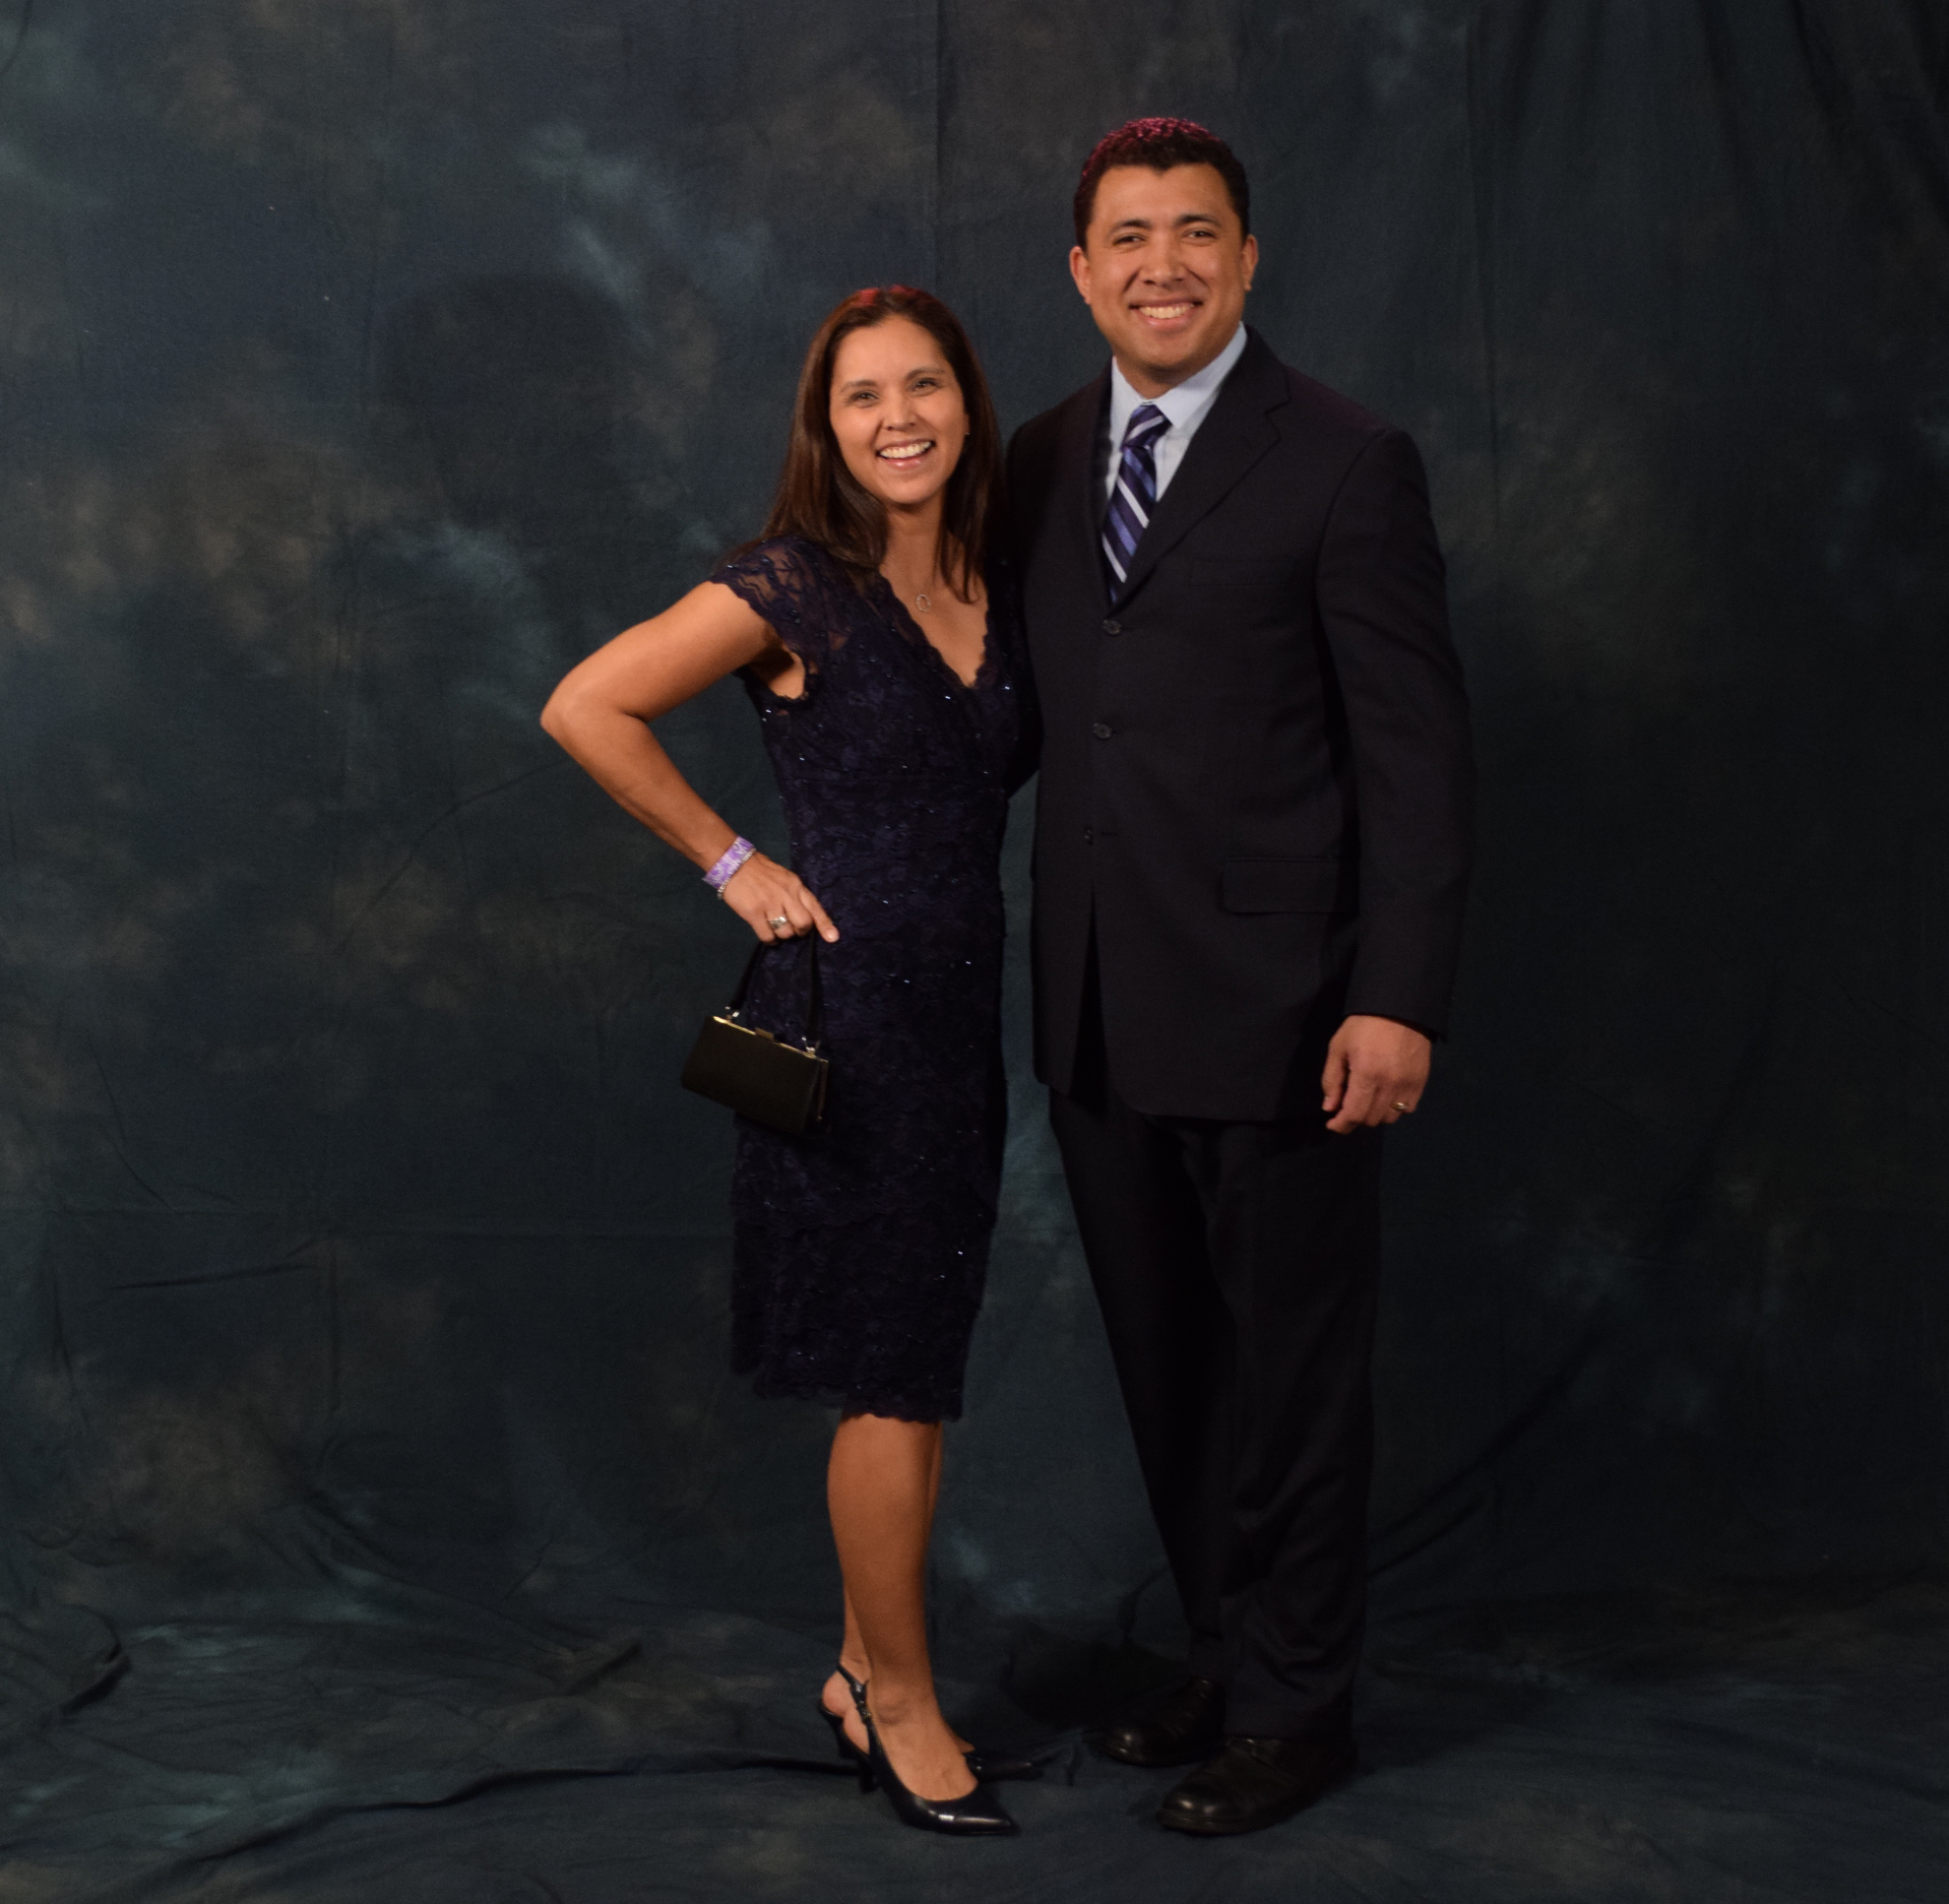 """Jaeleen and Todd Araujo.  Jaeleen said her dress was a """"Nordstrom sale find."""" Todd wore a blue suit to match his wife's dress.  (Photo by Skip Gray/KTOO)"""